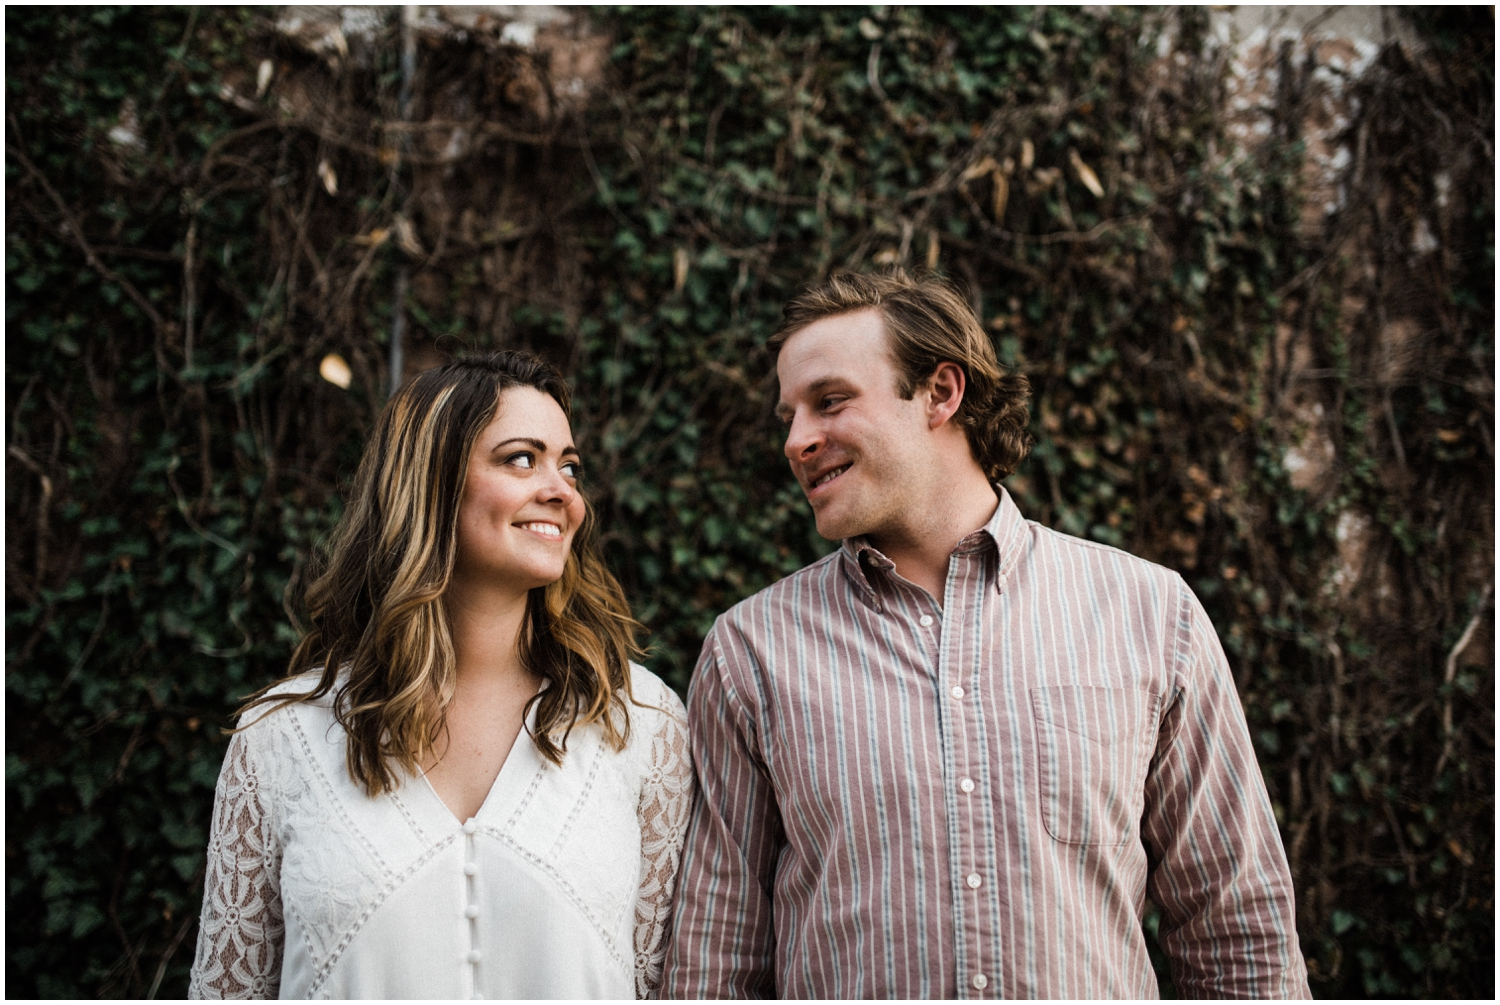 Chelsea-Hall-Photography-Dayton-OH- Engagement-Session_0120.jpg